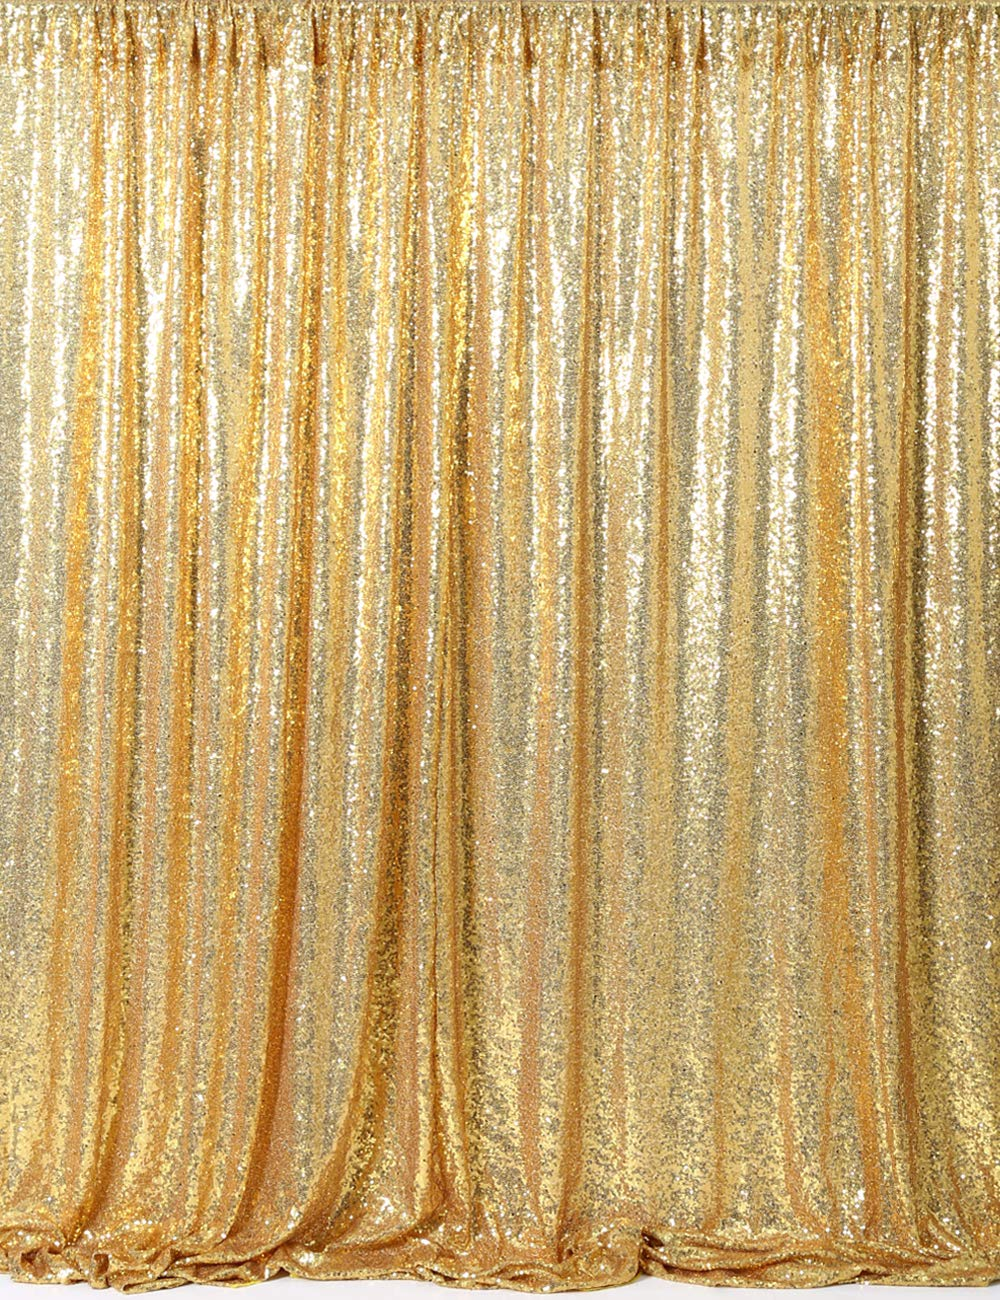 Gold Sequin Backdrop Photography 8ft x 8ft Sparkly Curtain Backdrop for Wedding Stage Decoration by QueenDream